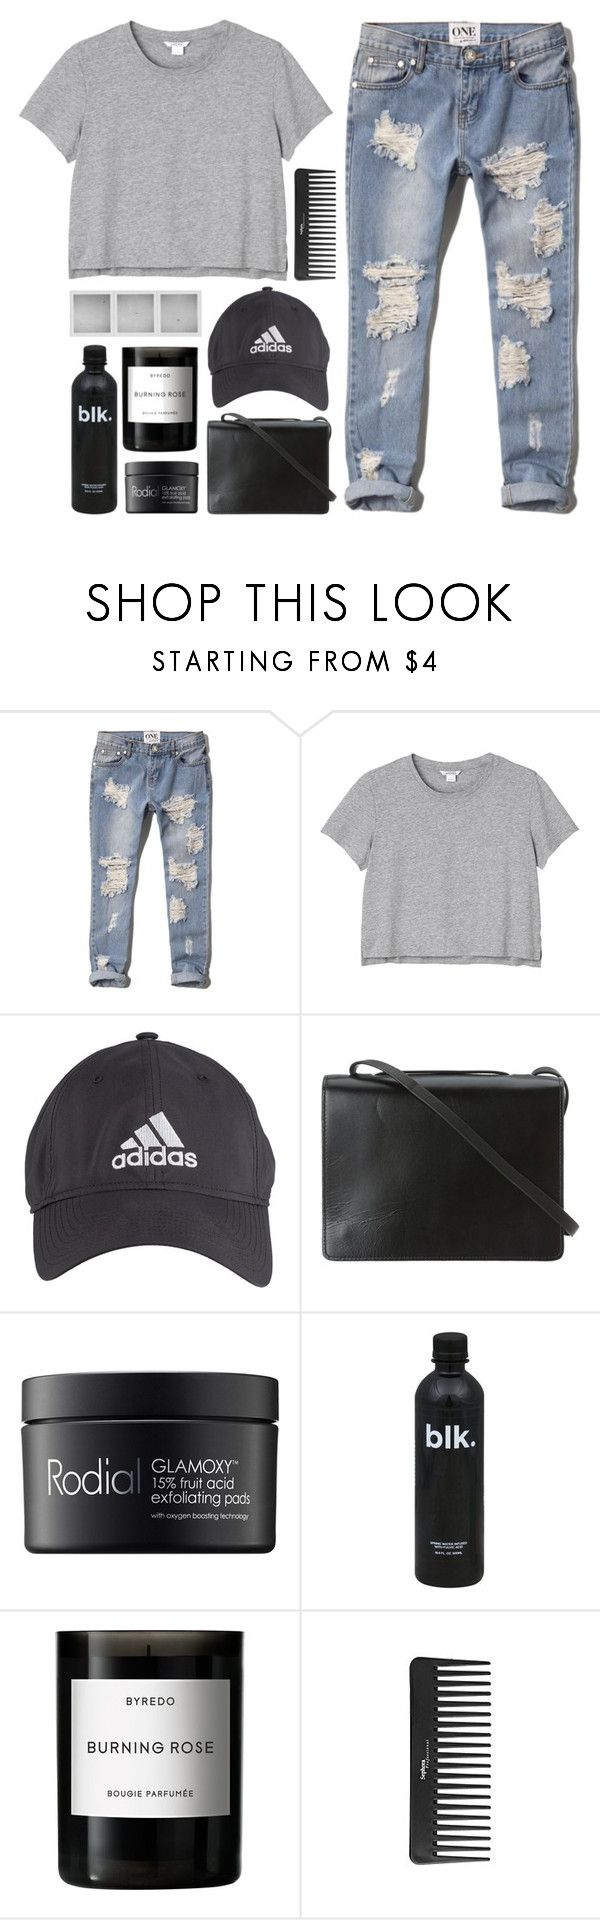 """""""Can't Take My Eyes Off Of You"""" by kara-burke ❤ liked on Polyvore featuring Abercrombie & Fitch, Monki, adidas, BCBGMAXAZRIA, Rodial, Holga, Byredo and Sephora Collection"""